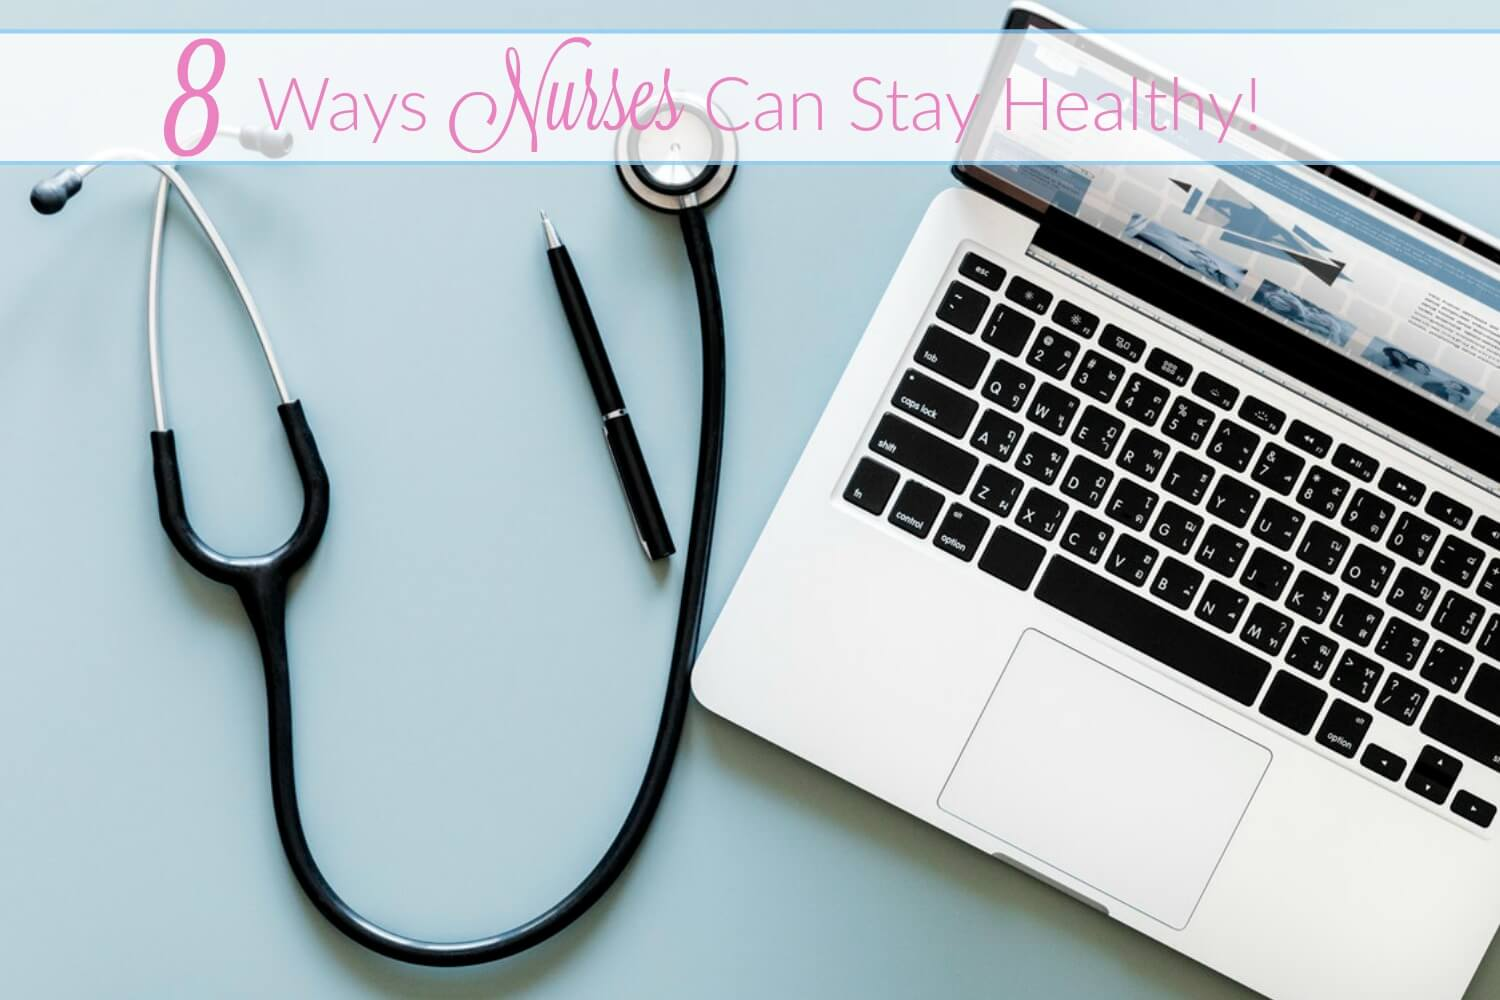 8 Ways Nurses Can Stay Healthy